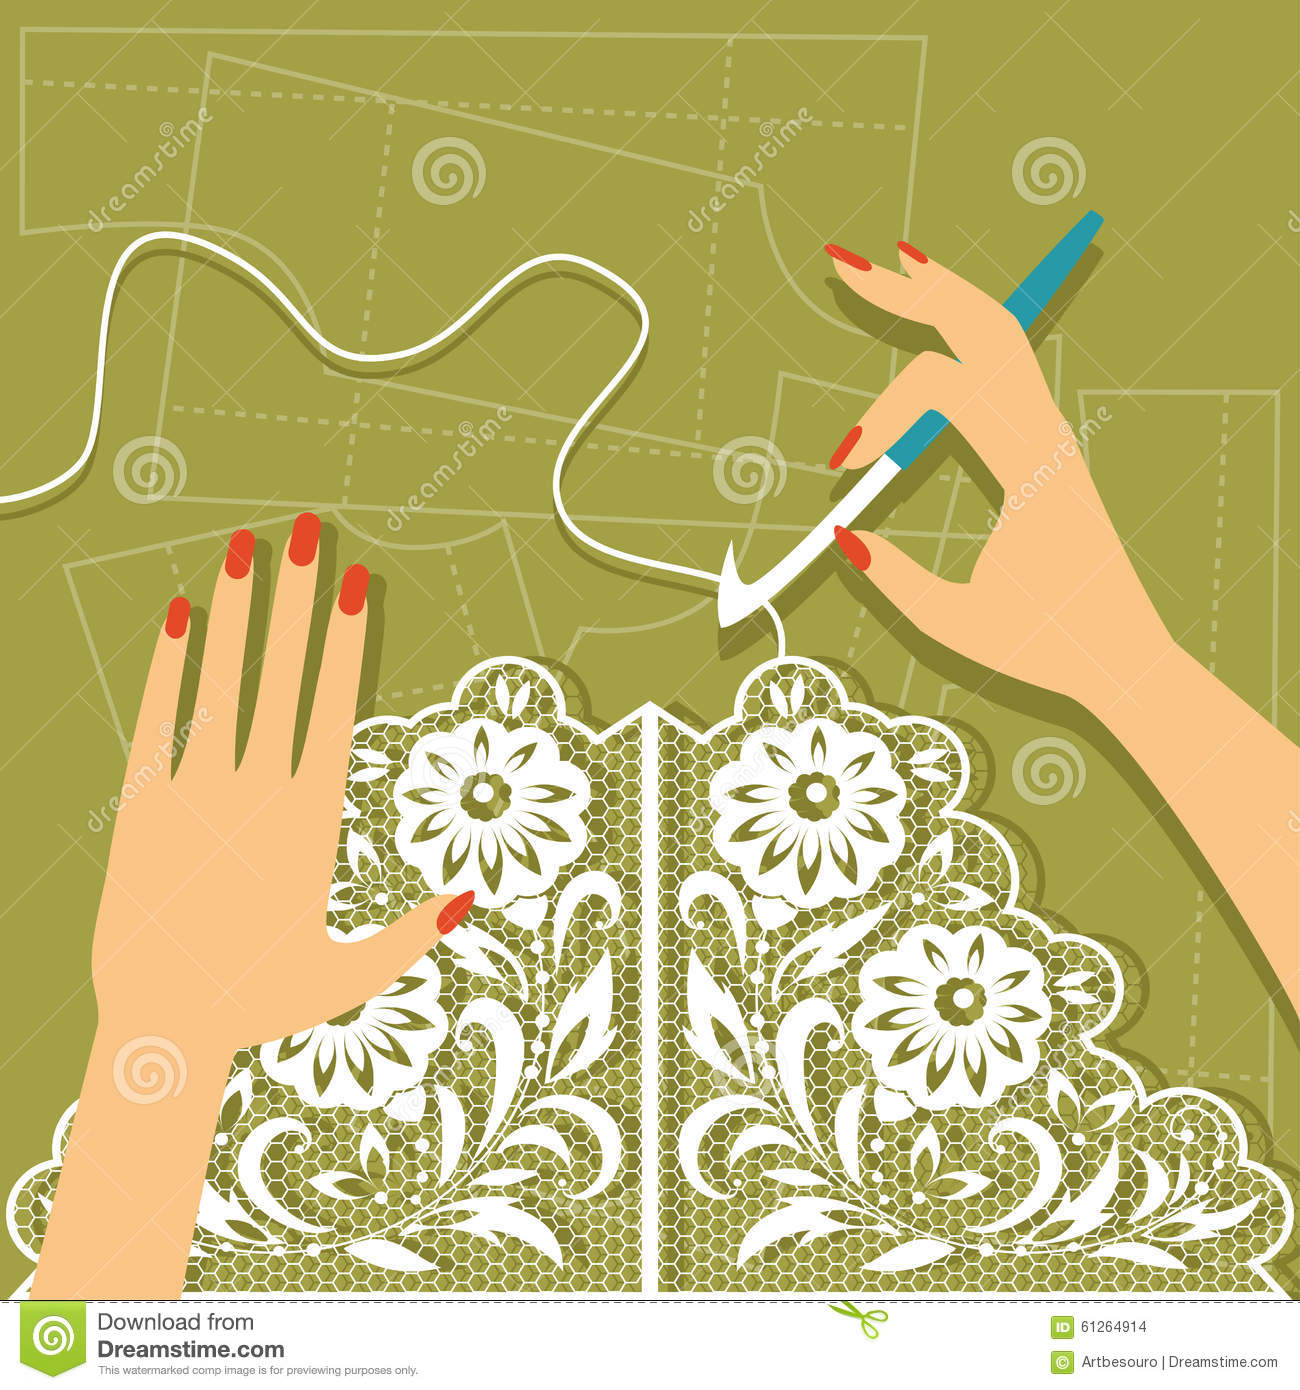 Crocheting Vector : Crochet. Vector Illustration Stock Vector - Image: 61264914